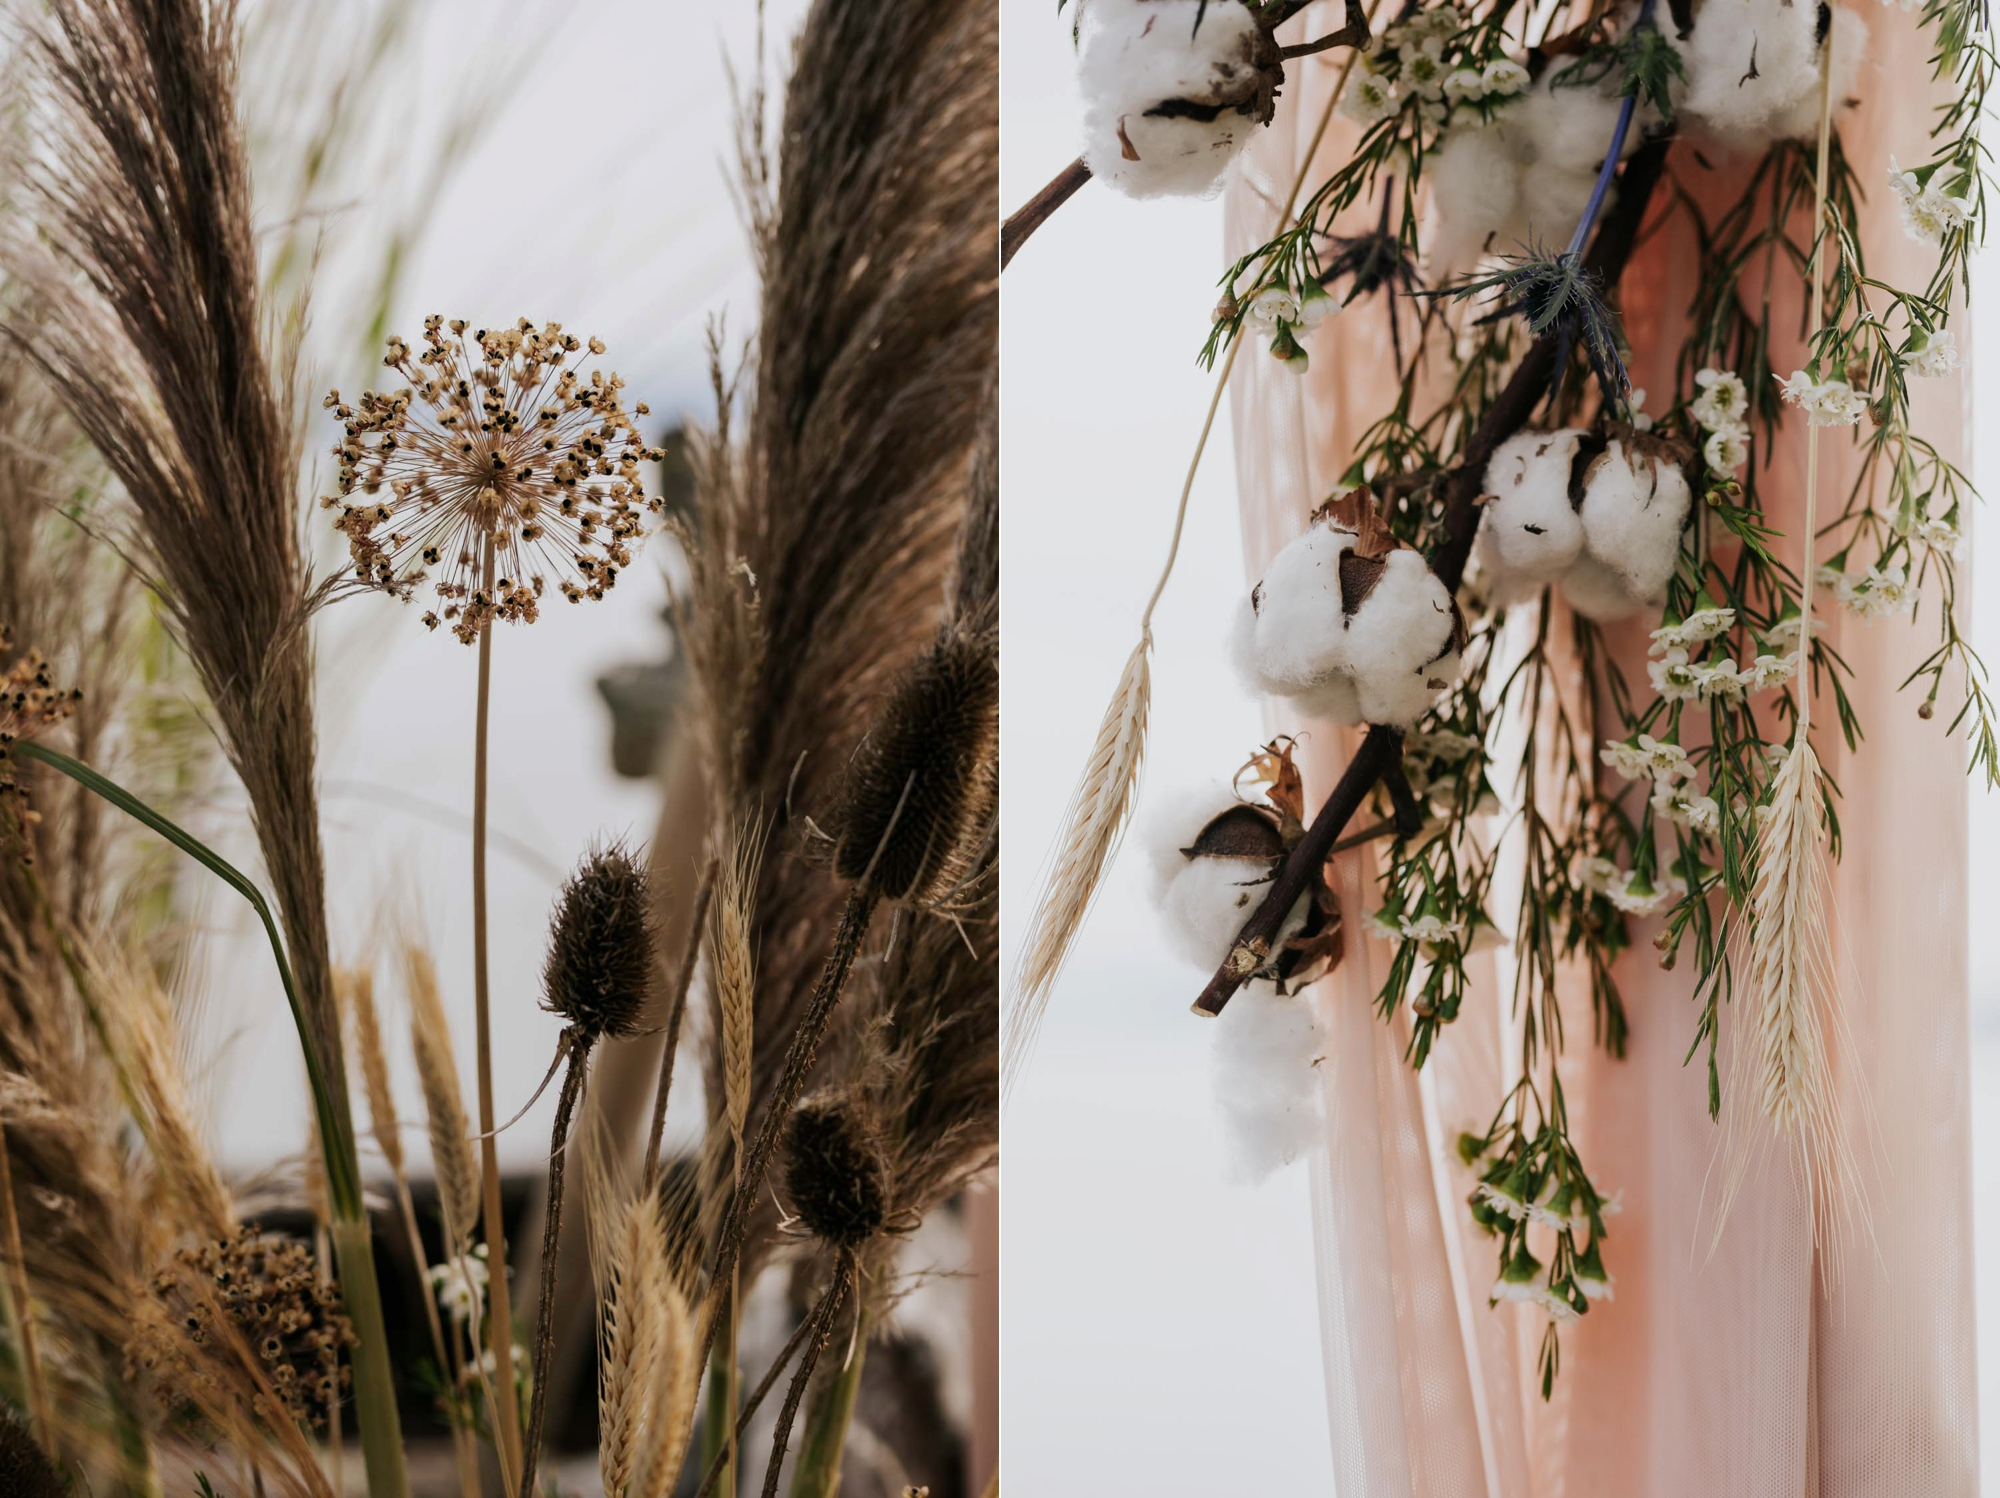 Boho dusty pink fabric, raw cotton stems, pampas grass and dried flowers on wooden wedding ceremony arch